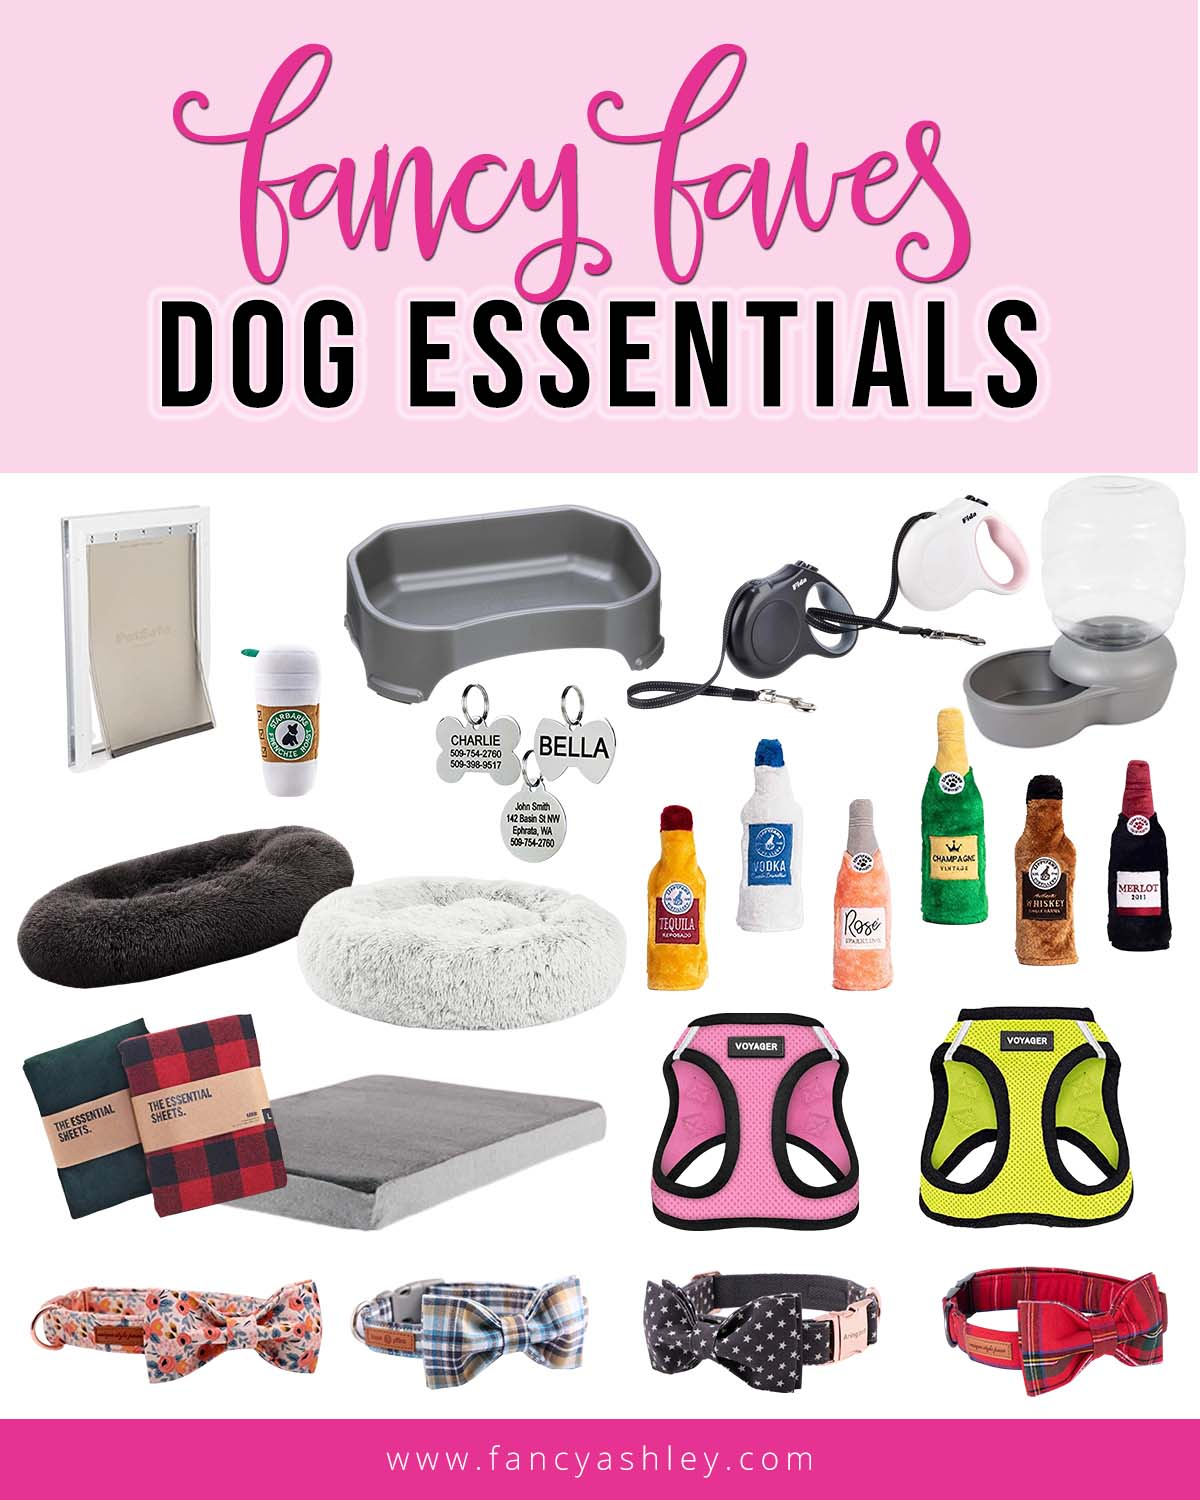 Dog Essentials by popular Houston lifestyle blog, Fancy Ashley: collage image of a dog leash, dog bed, dog bow tie collars, dog water dispenser, dog tag, doggie door, dog harness, dog booze toys.